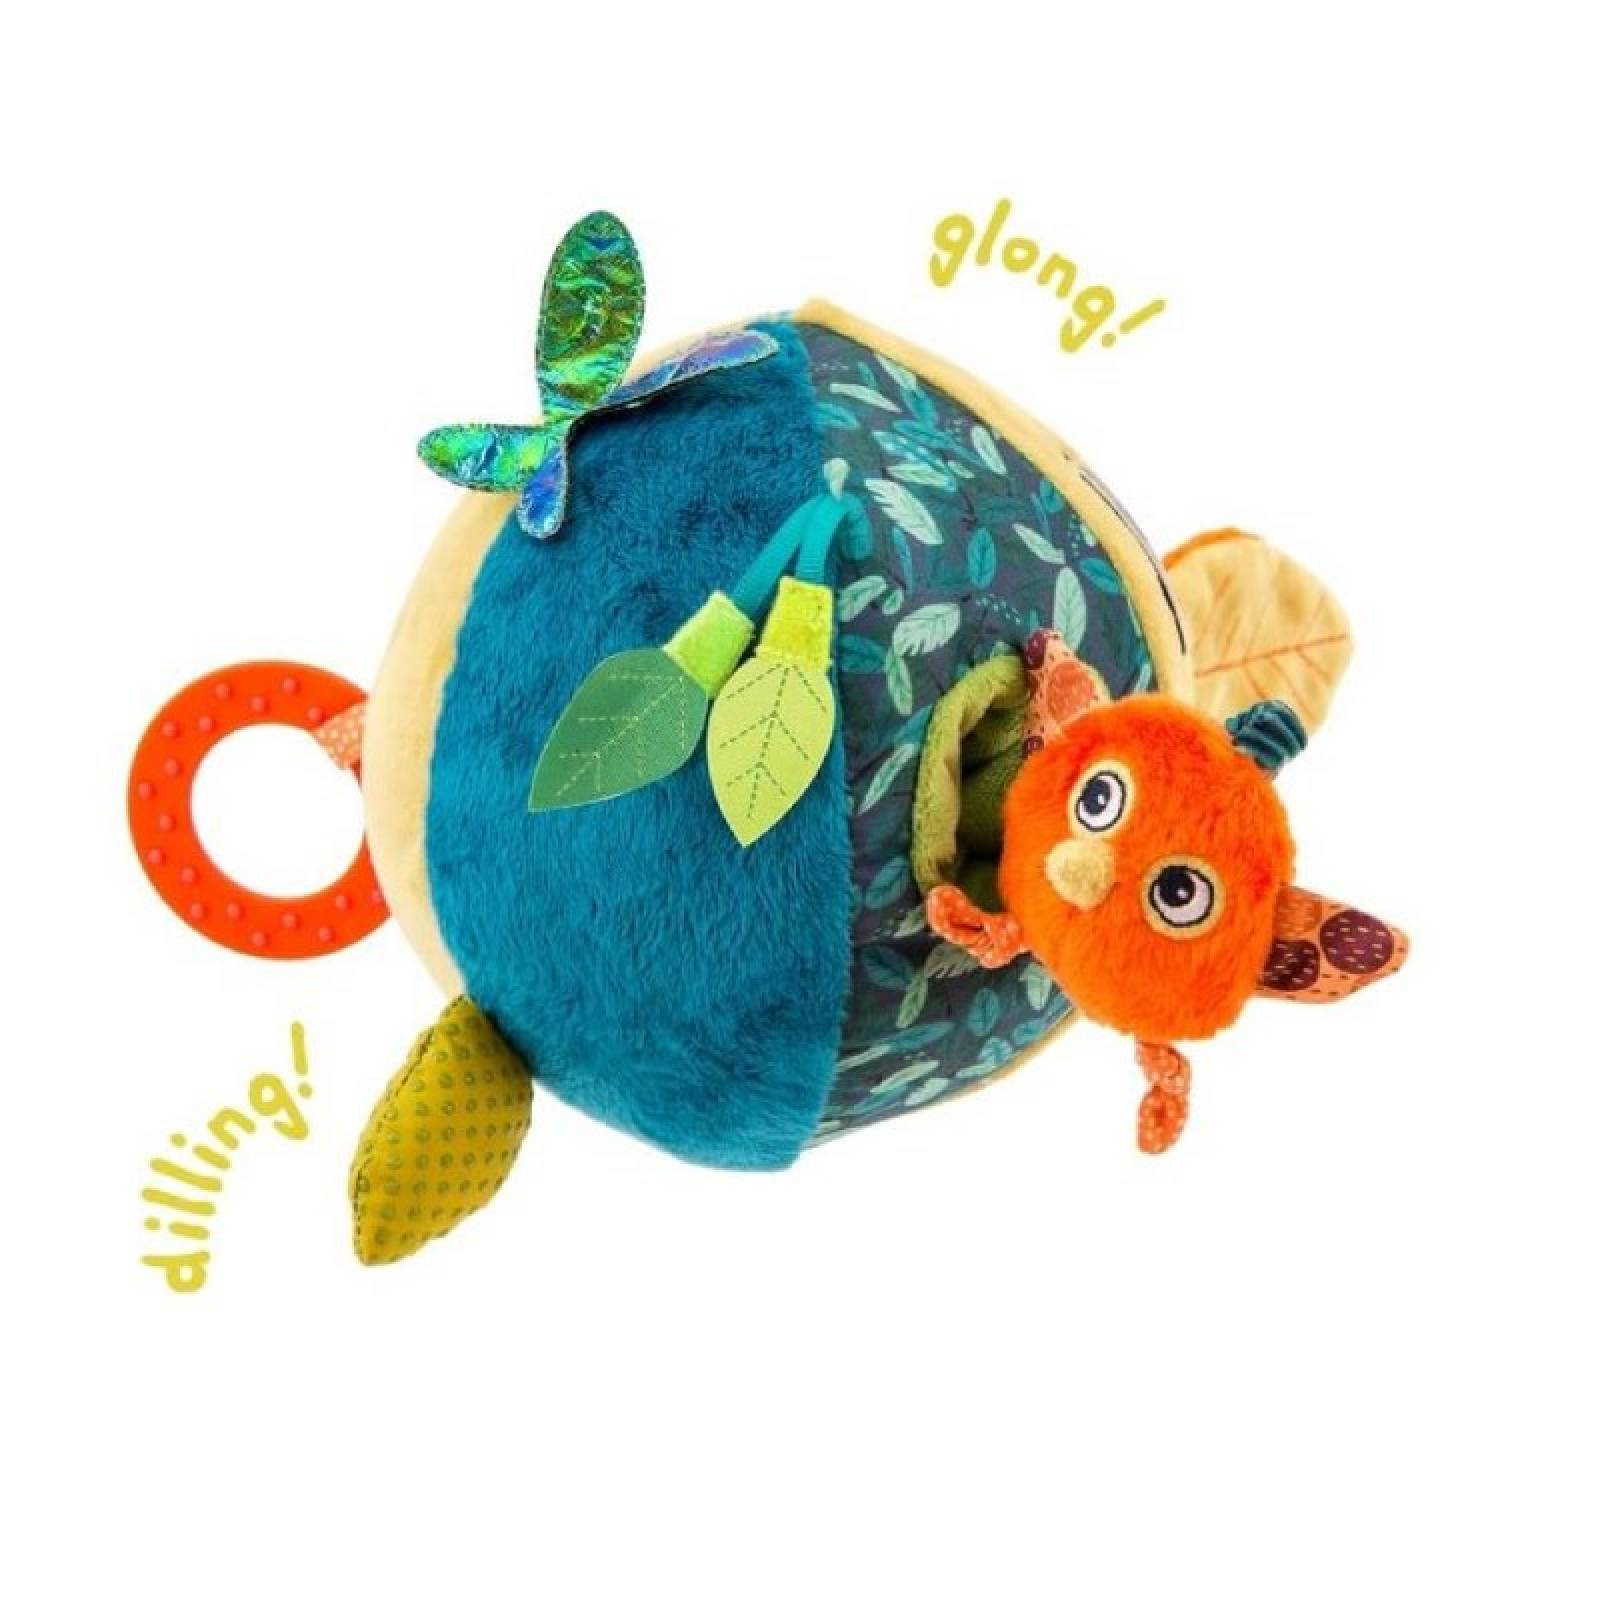 In The Jungle Soft Activity Ball 0+ thumbnails